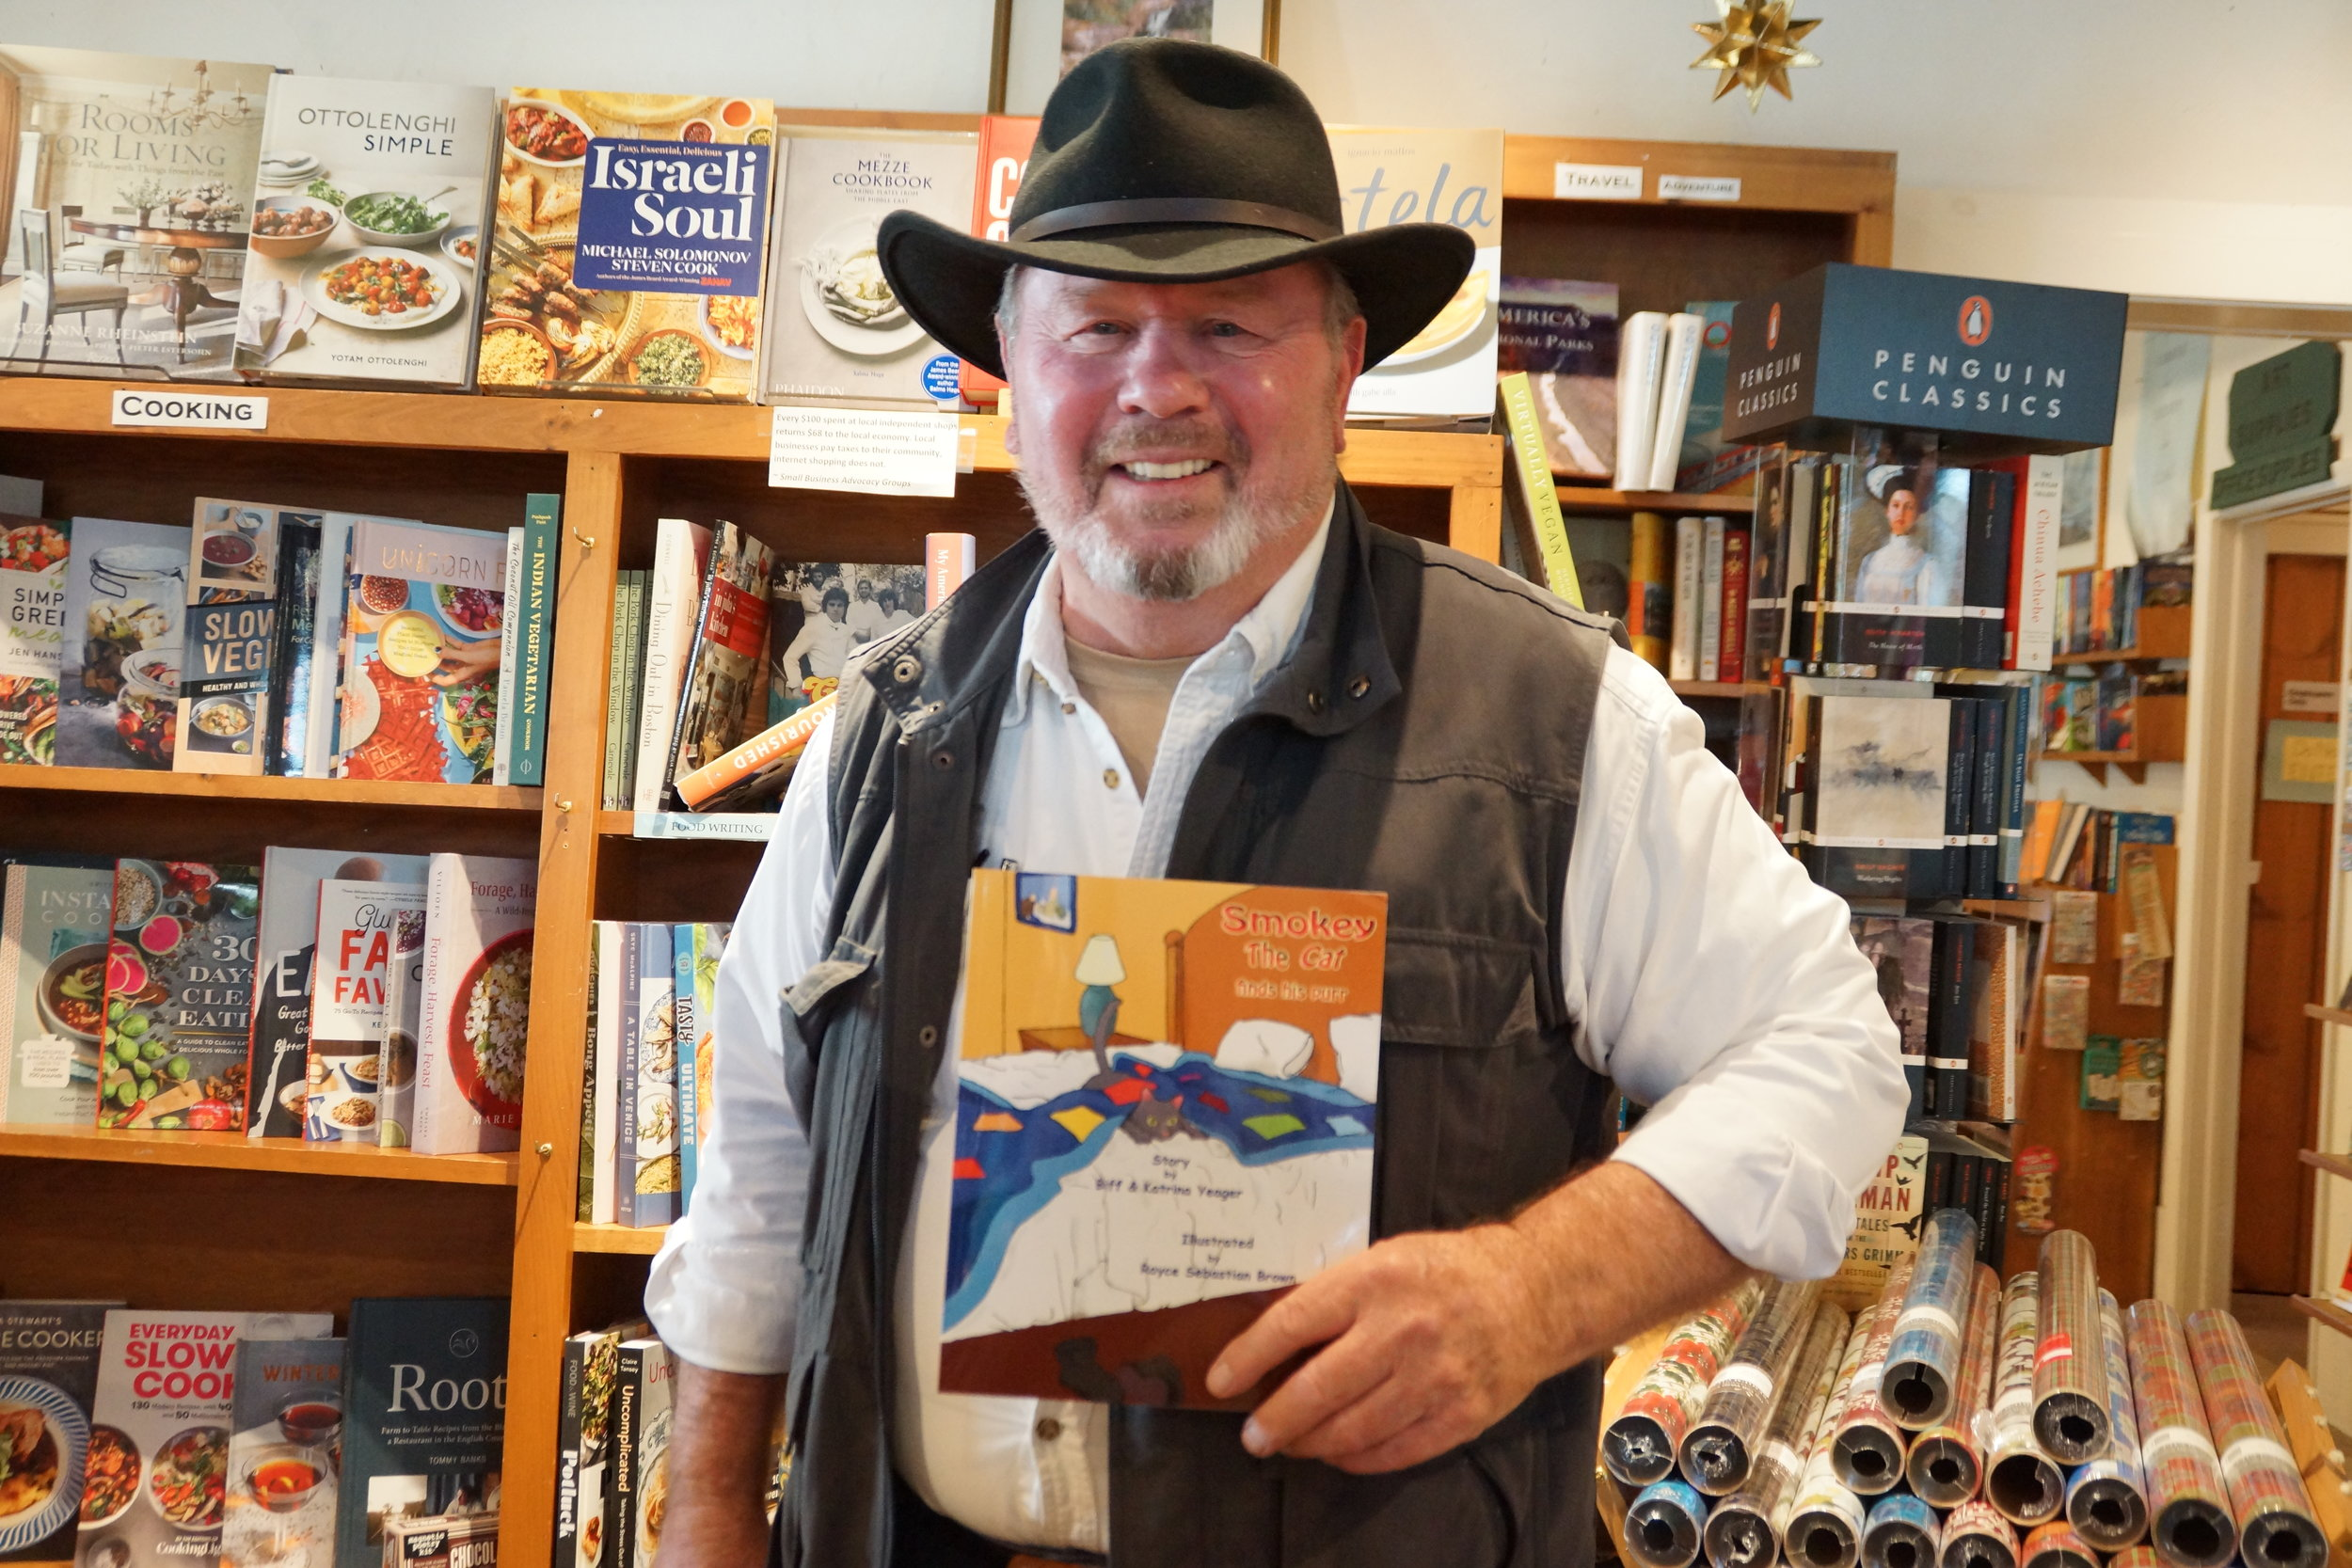 BIFF YEAGER - YOU MIGHT KNOW HIM AS TOM, THE STARS HOLLOW CONTRACTOR, BUT WE KNOW HIM AS BIFF THE AUTHOR, PHOTOGRAPHER & ARTIST! AND, WE'RE SO GLAD WE'LL SEE HIM WALKING THE STREETS OF UNIONVILLE WITH US!